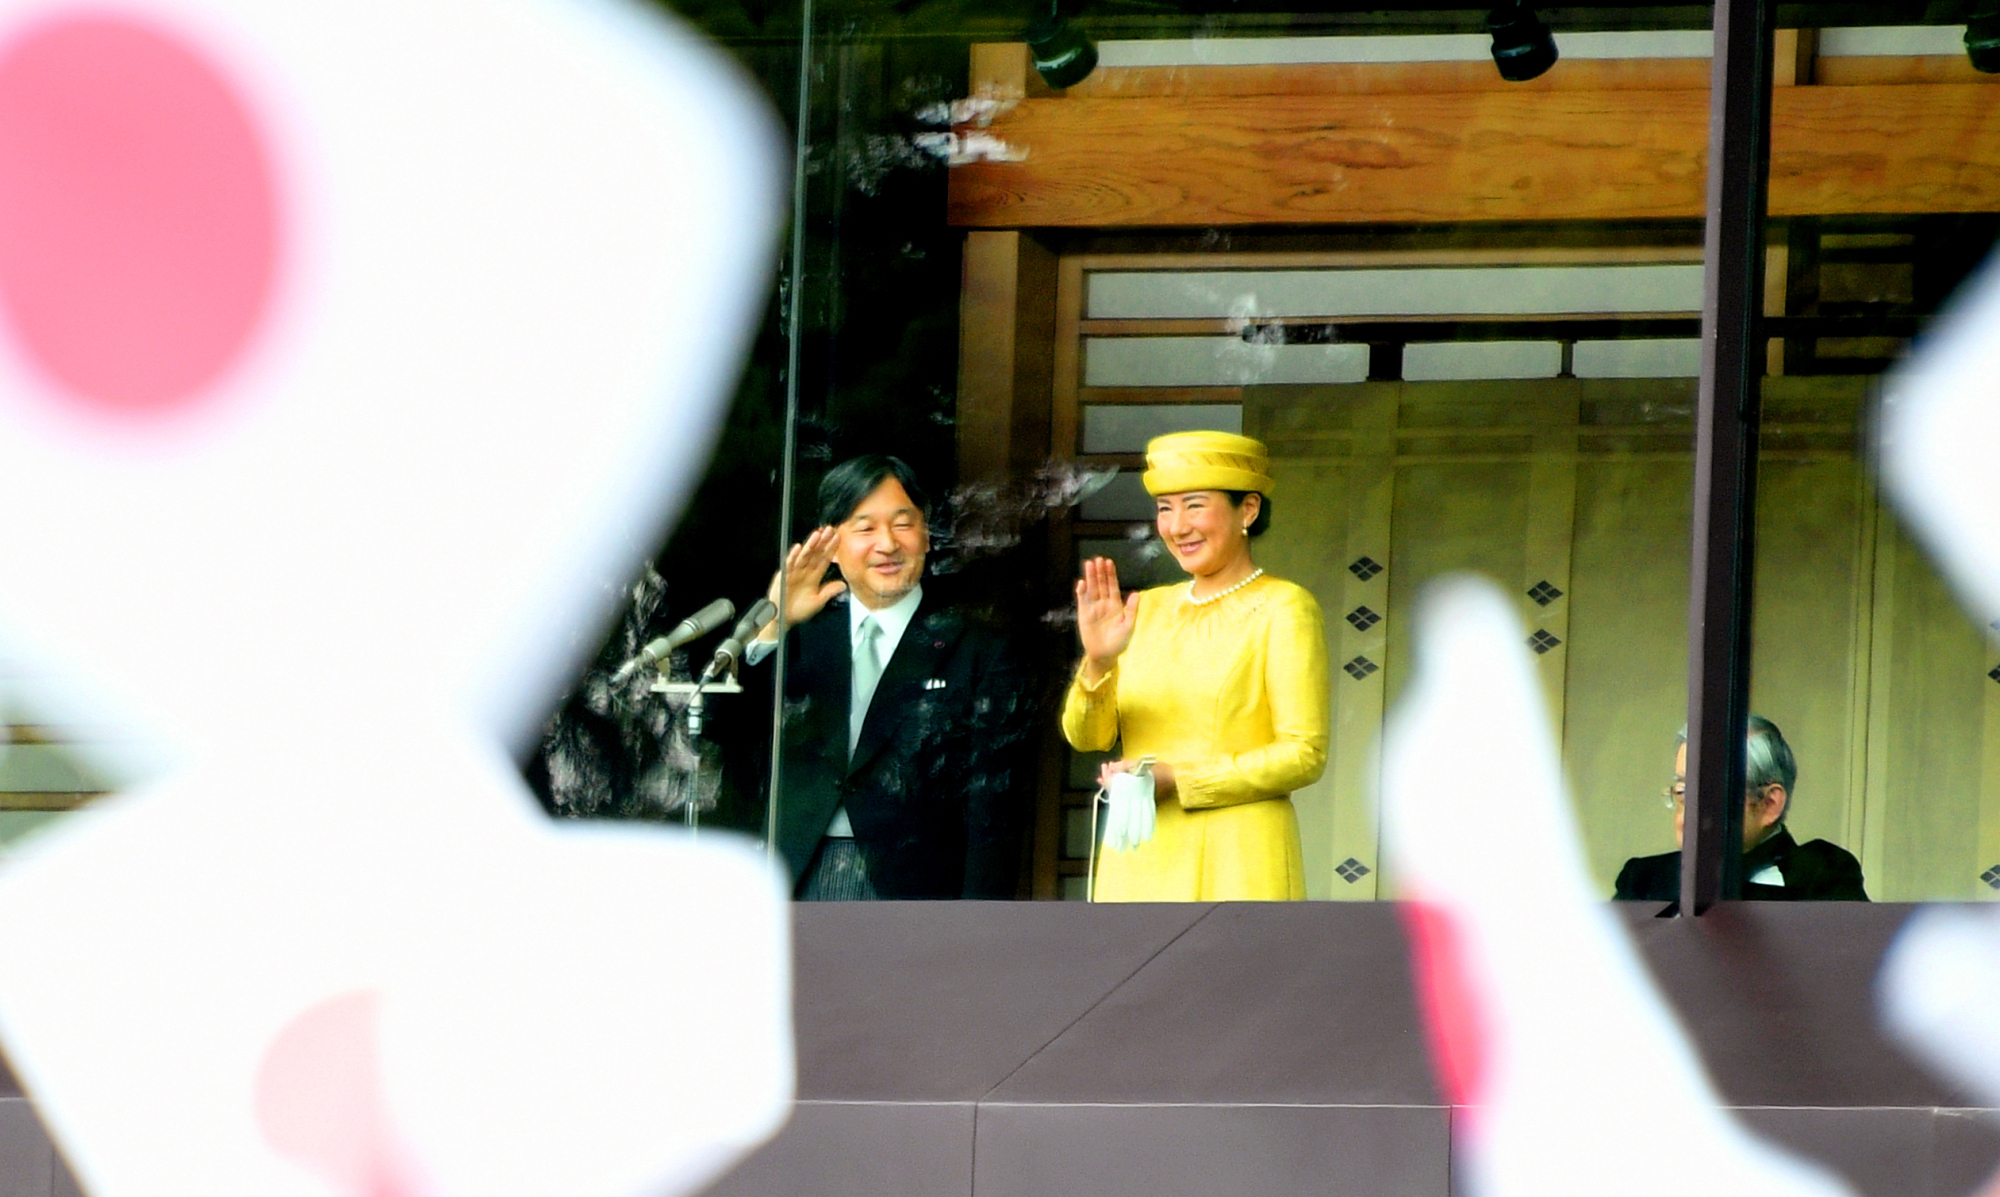 Emperor Naruhito and Empress Michiko wave to well-wishers at the Imperial Palace in Tokyo in May last year. The Imperial Household Agency has canceled a number of public events to protect members of the family from the coronavirus outbreak. | YOSHIAKI MIURA